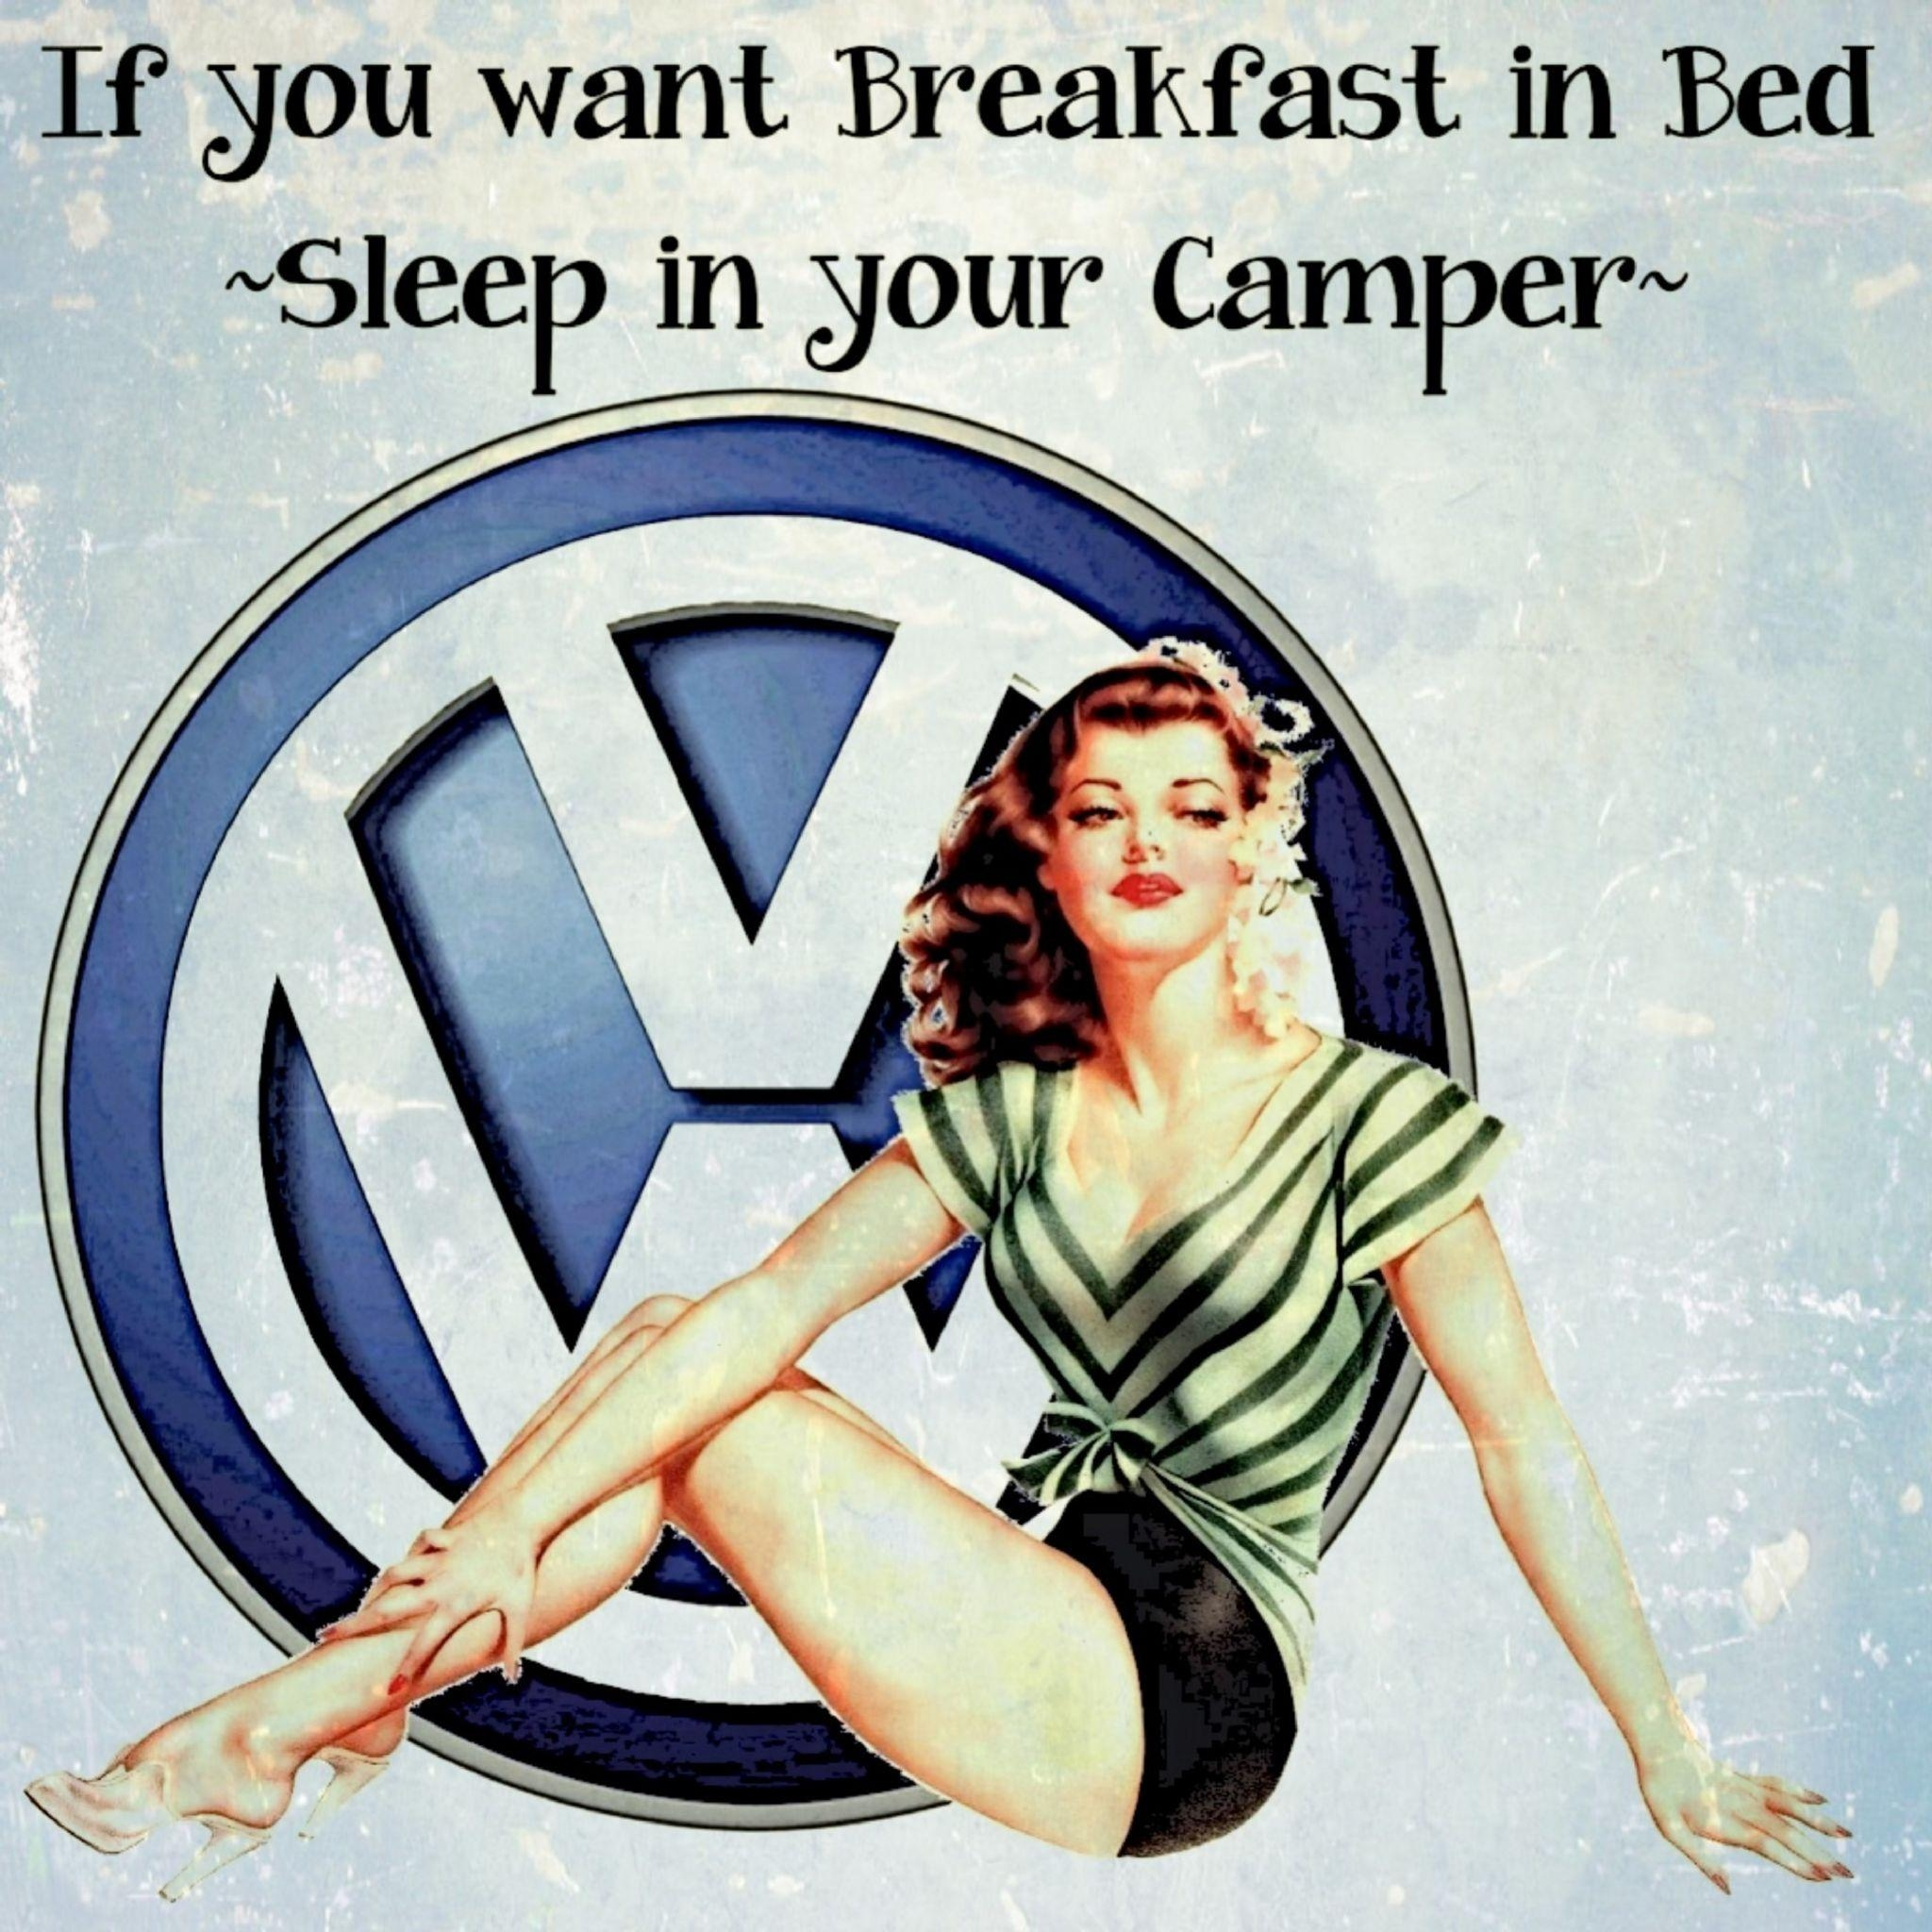 Breakfast In Bed Volkswagen Camper Inspirational Quote Vintage Inside Campervan Metal Wall Art (Image 2 of 20)